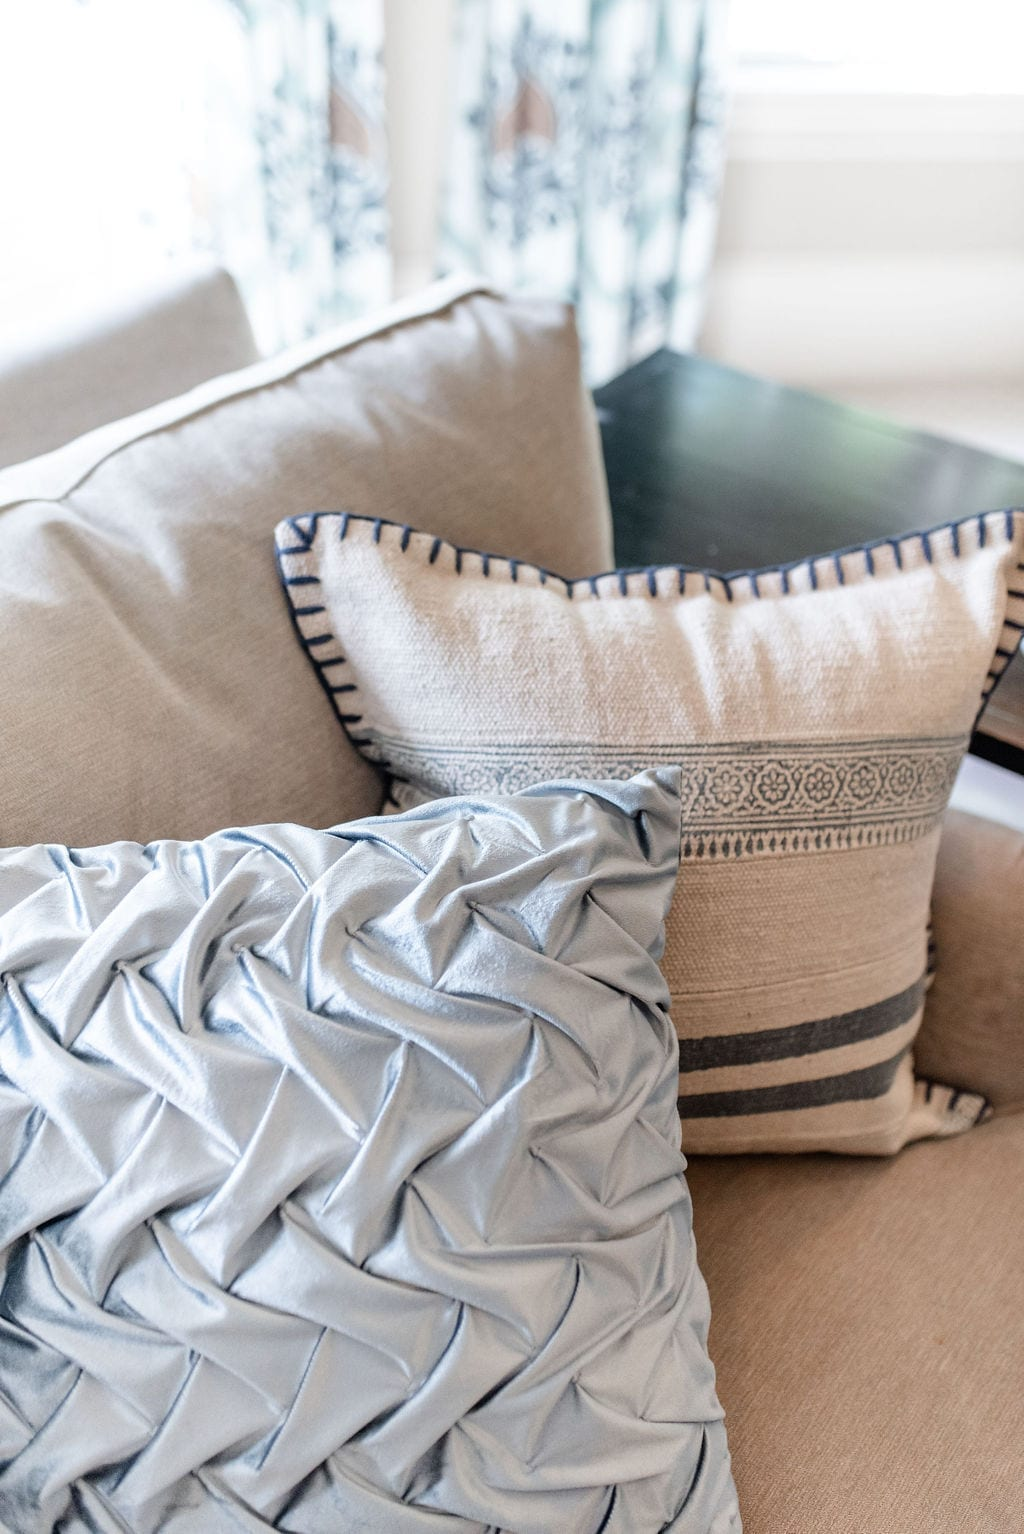 Wayfair throw pillows on sale! Gorgeous blue and white pillows with blue accents. See how to mix and match pillow patterns and colors on a simple table chenille couch.